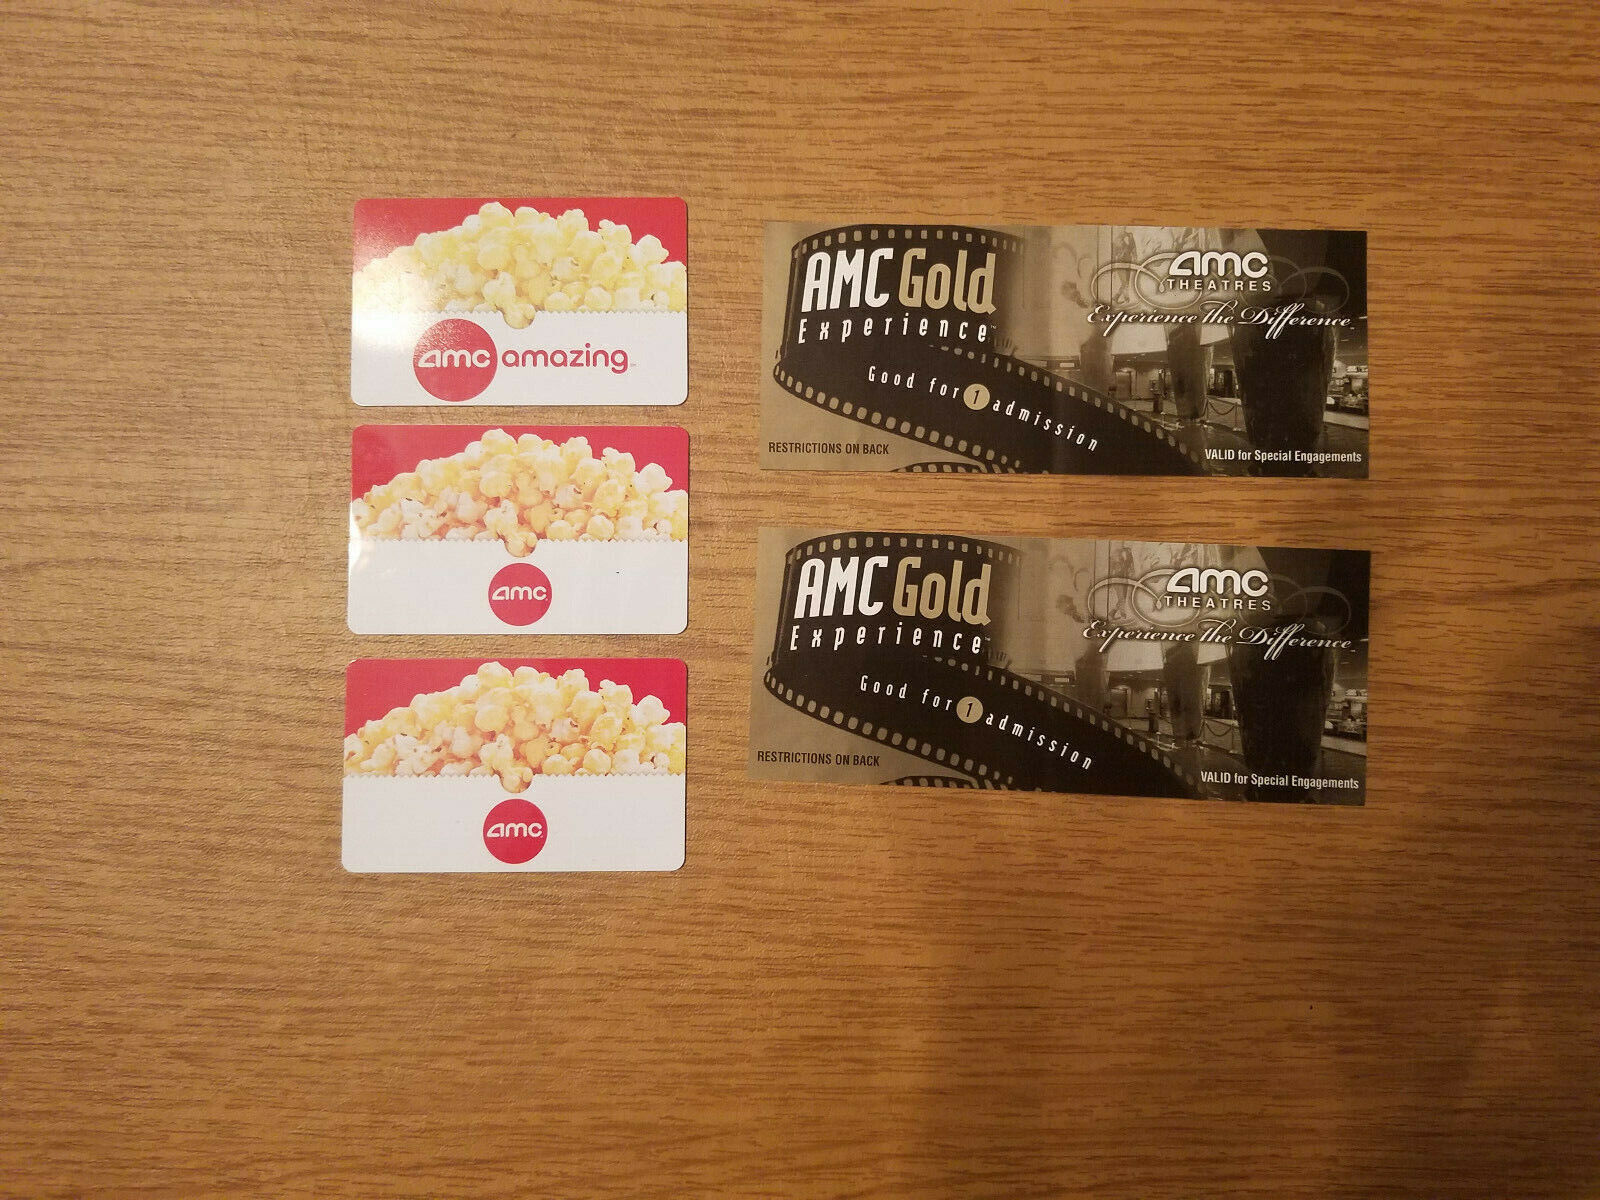 AMC Theatres Gift Cards 60.08 Total 2 Gold Experience Tickets - $43.00